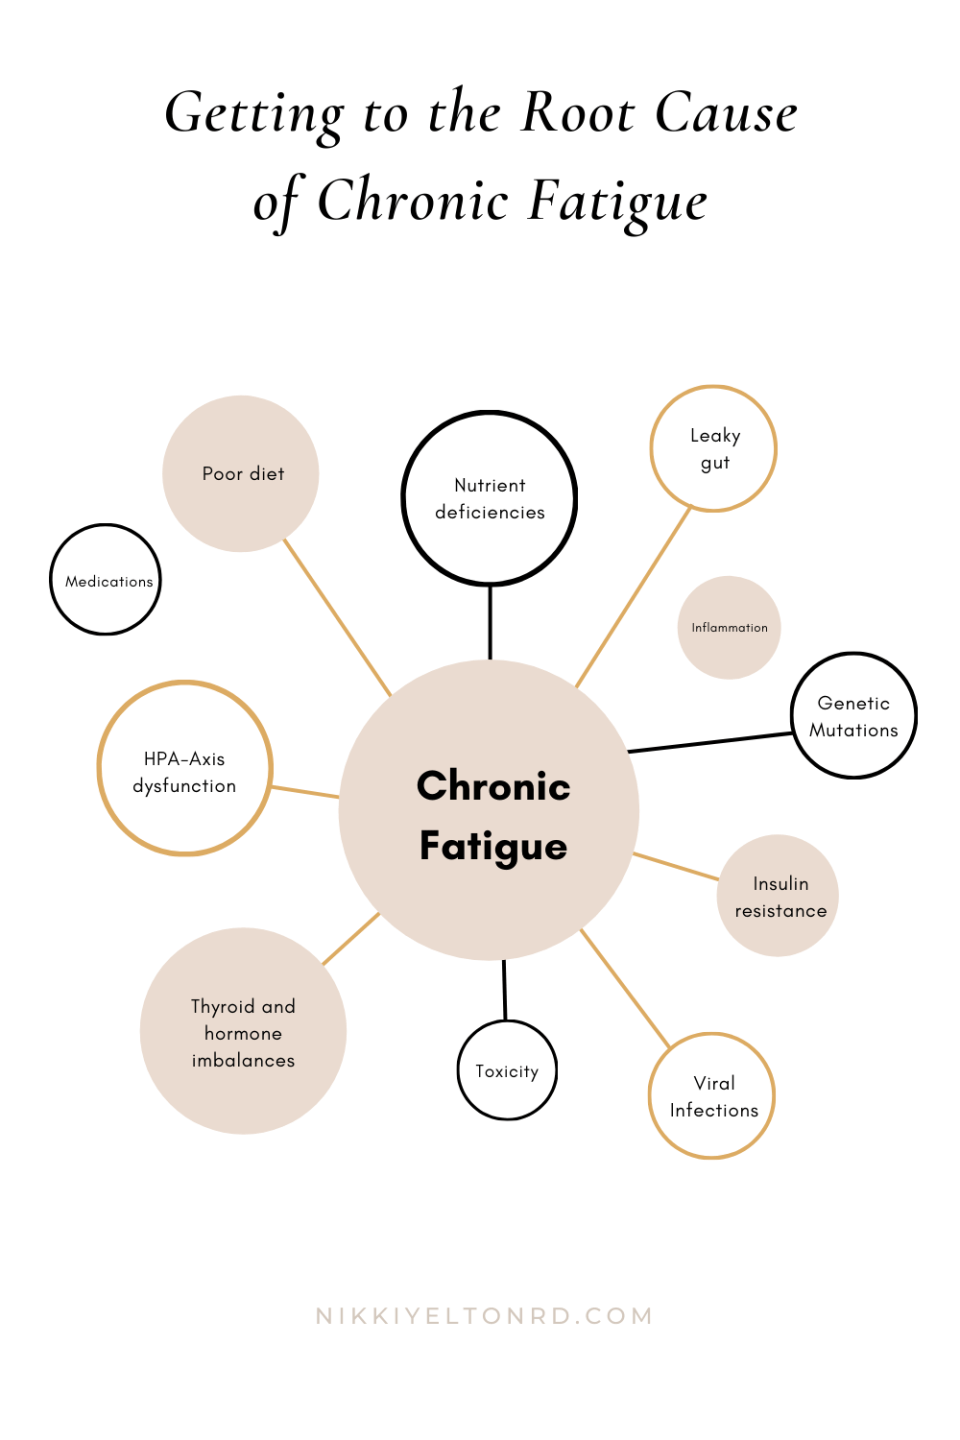 Common underlying causes of fatigue